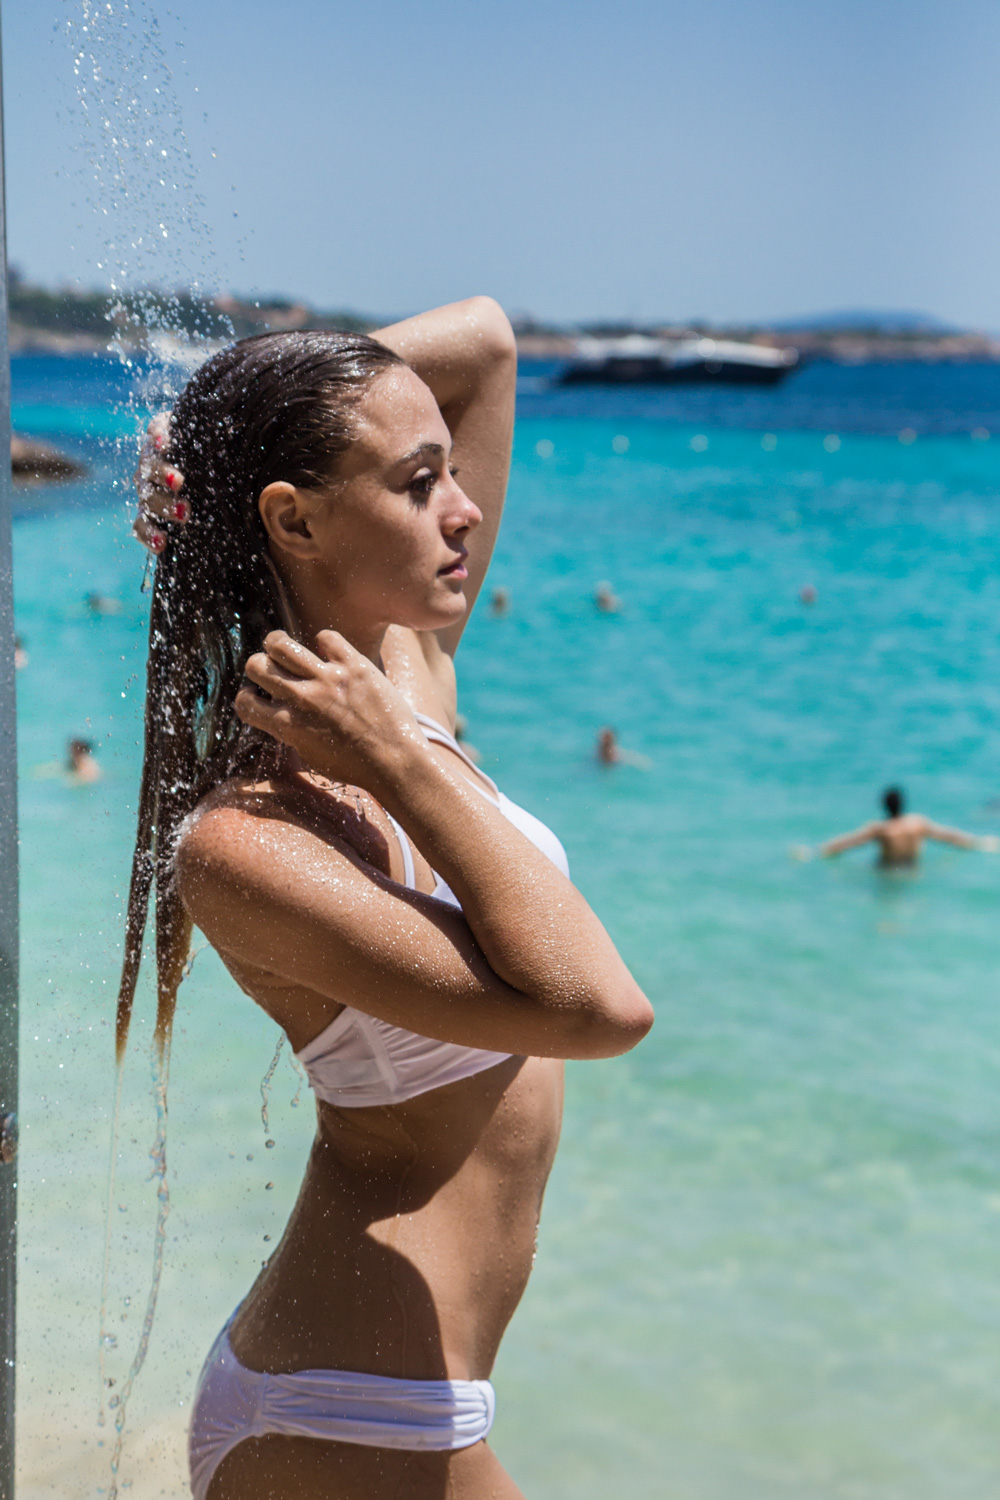 A young woman showering her hair next to the sea.